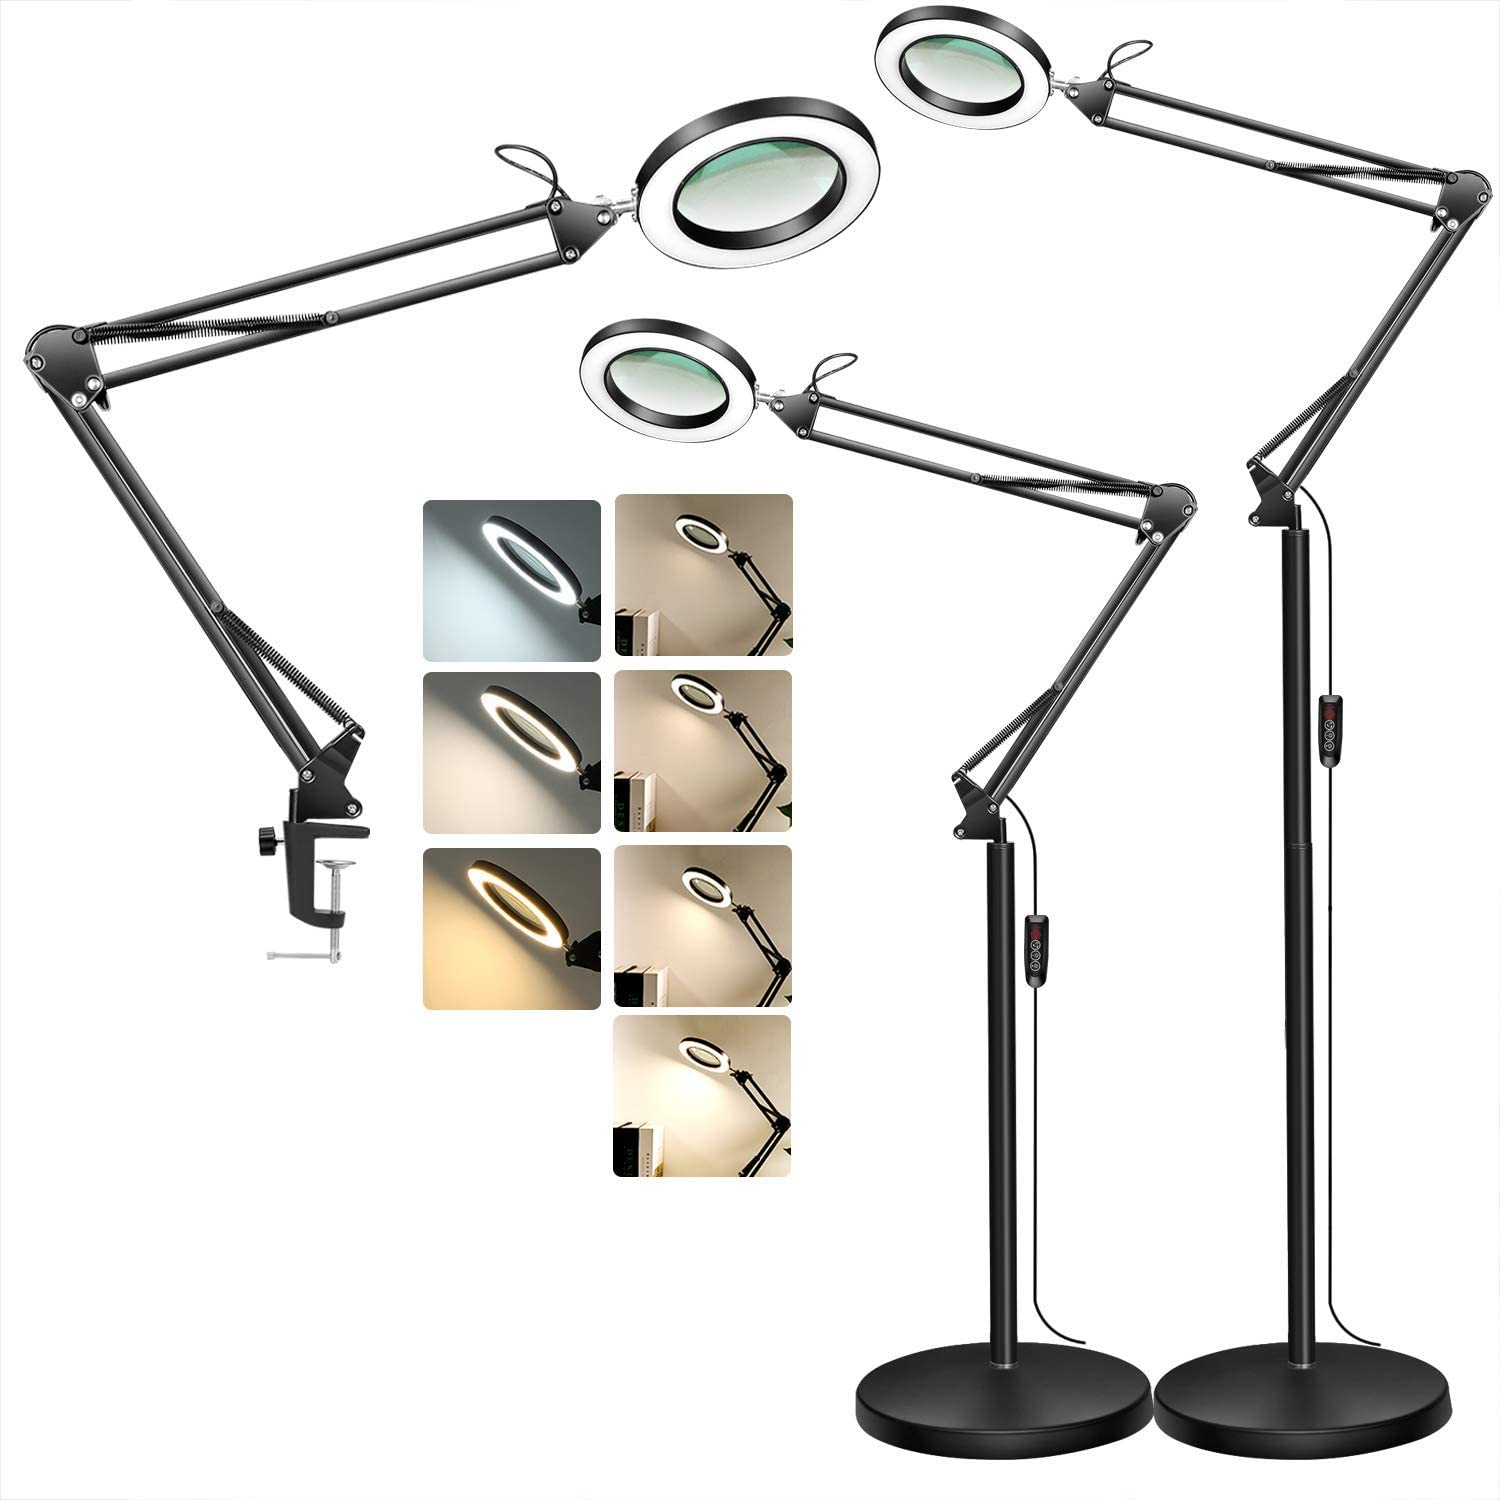 TOMSOO Magnifying Floor Lamp Max 81% OFF with Stepless Modes Color 3 Clamp security